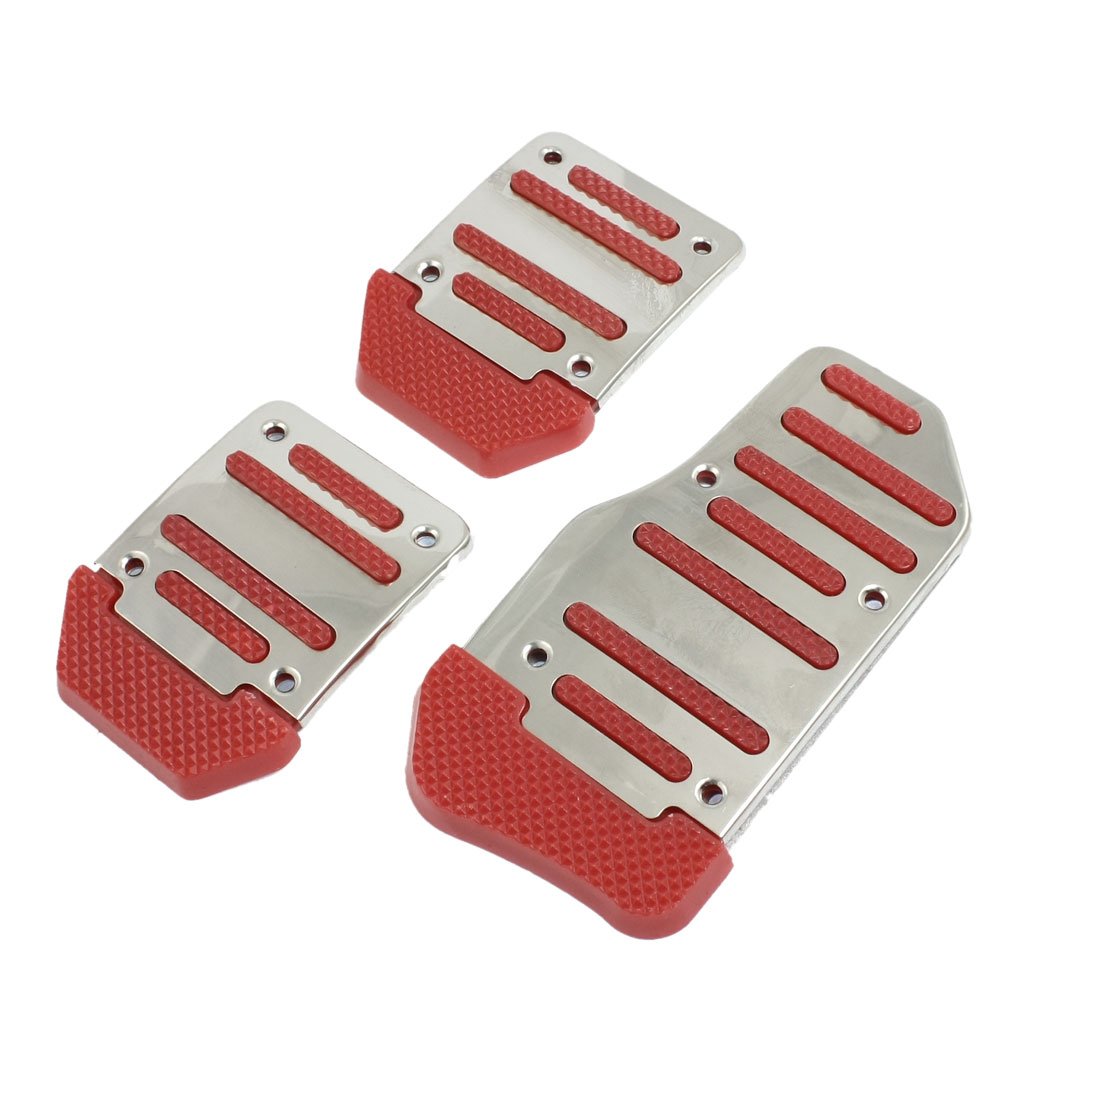 3 Pcs Silver Tone Red Nonslip MT Car Gas Brake Pedal Cover